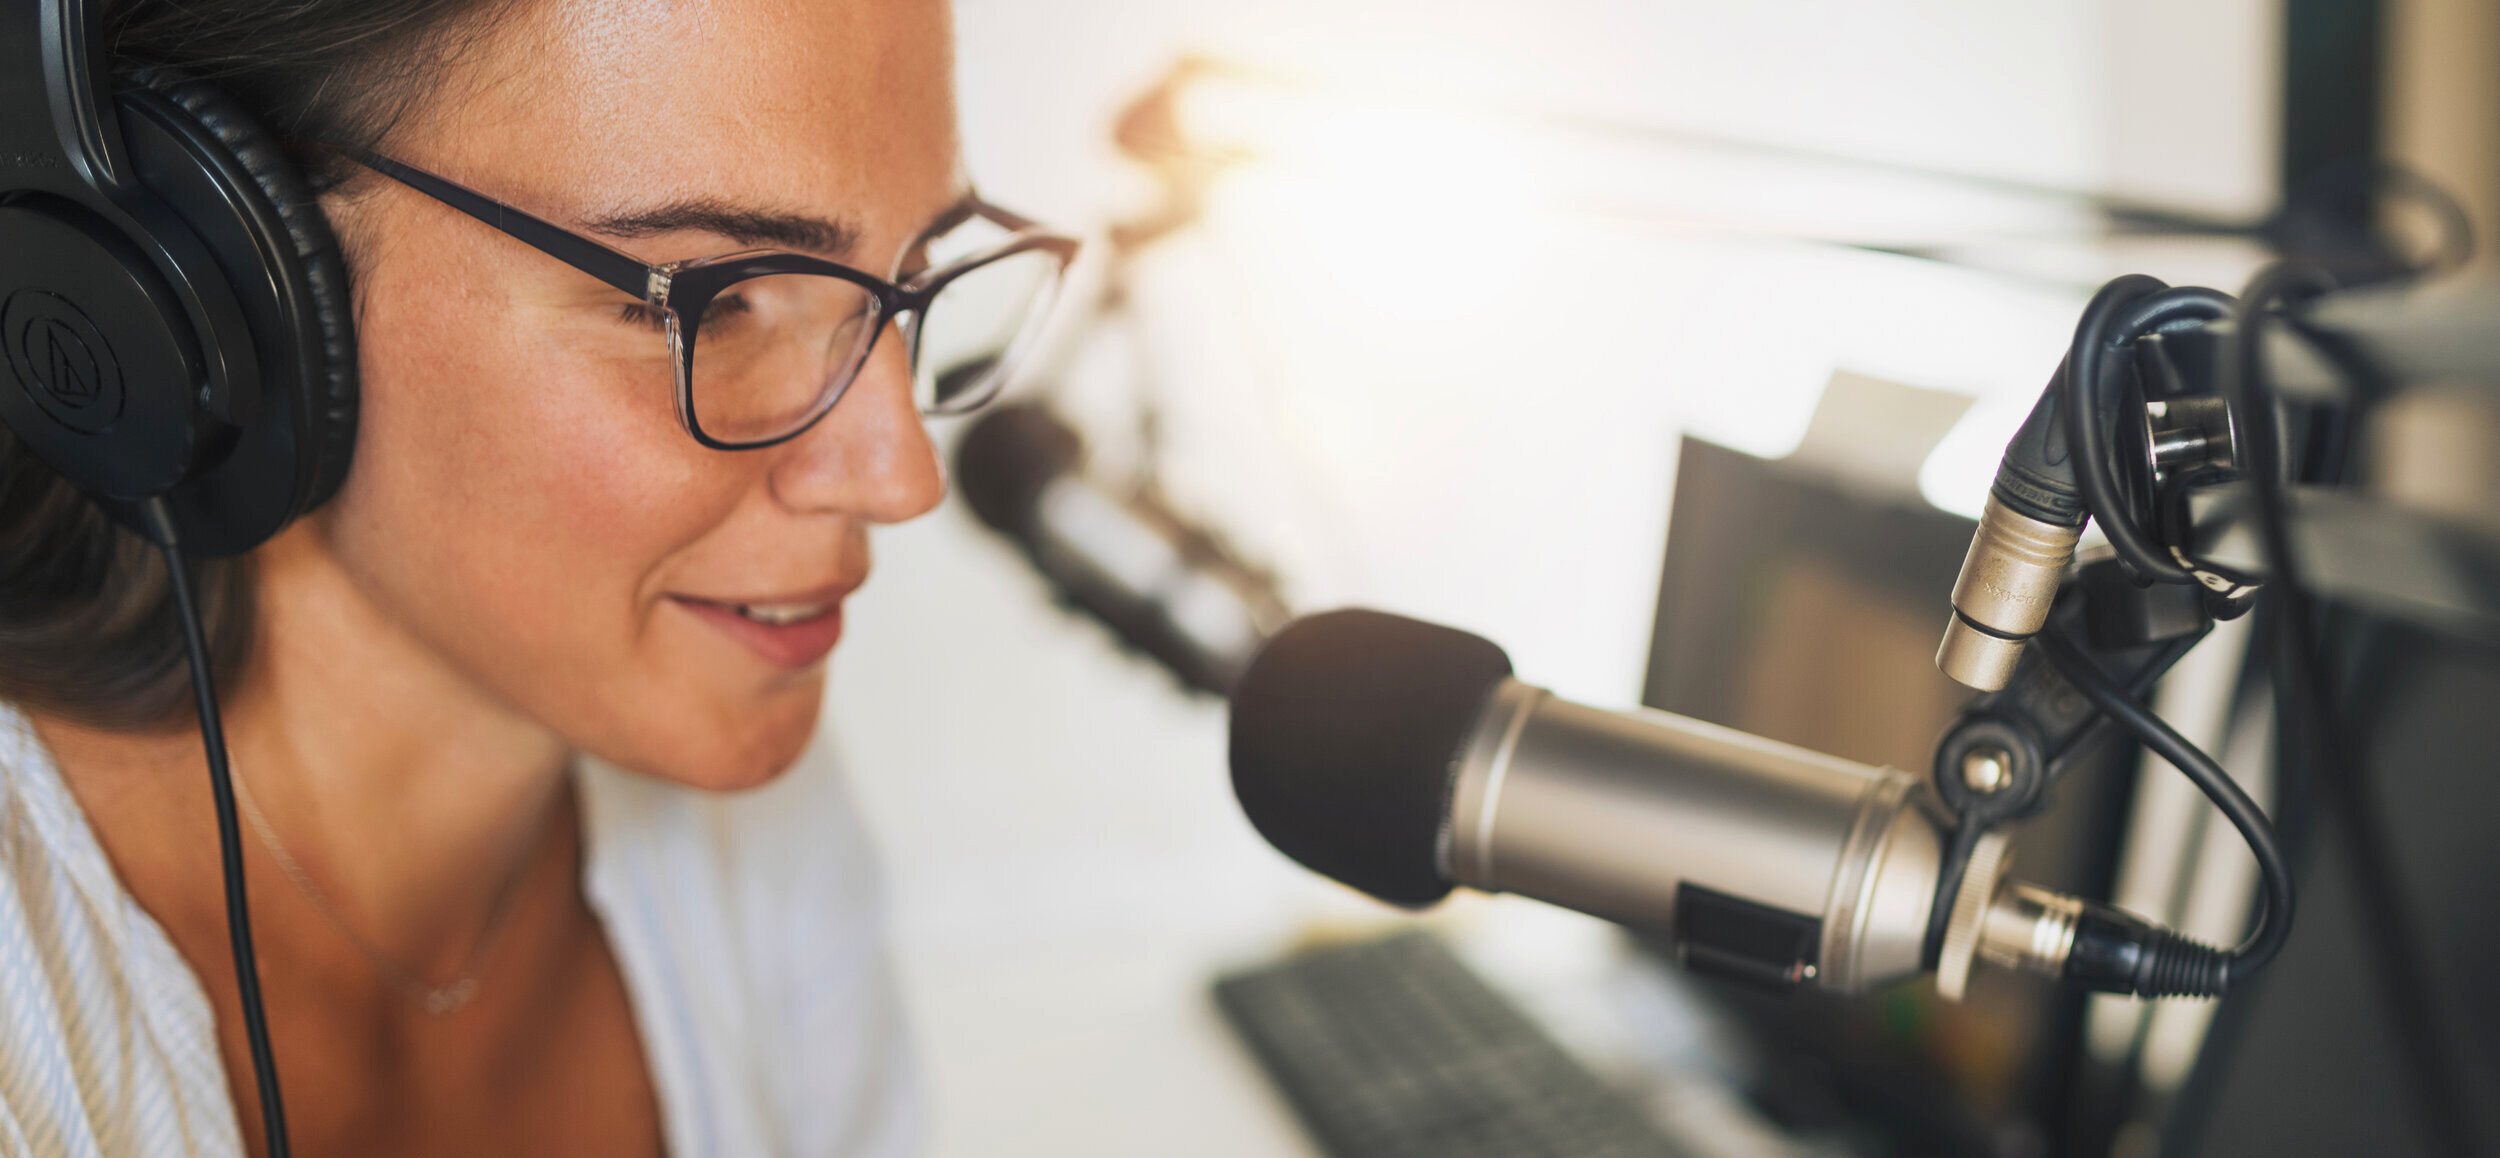 Podcast-Lady+talking+into+microphone